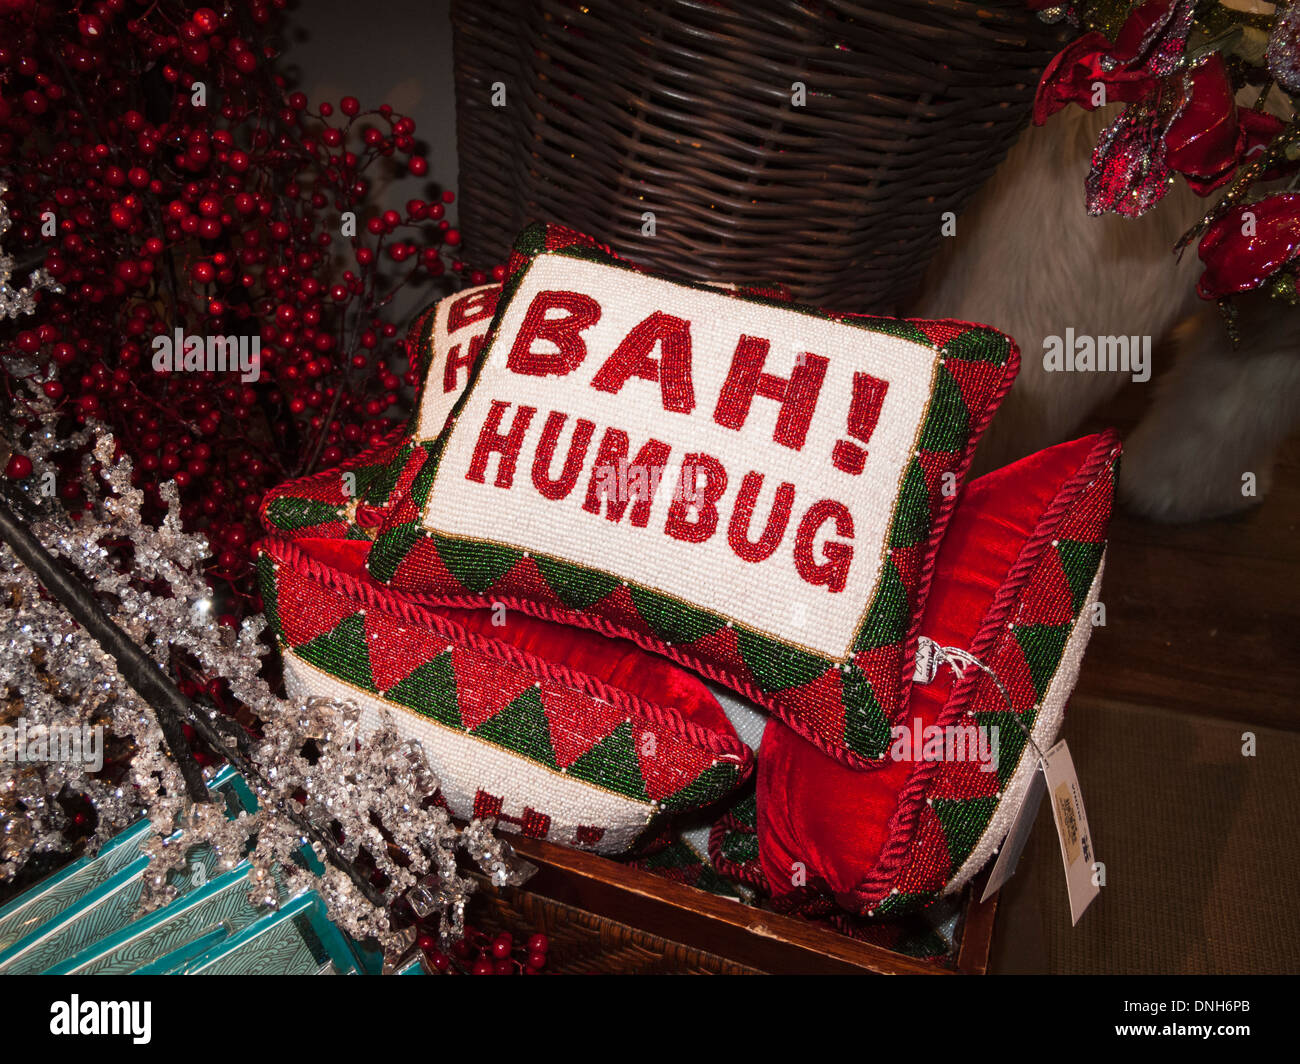 'Bah humbug' red, white and green beaded Christmas decoration cushion - Stock Image